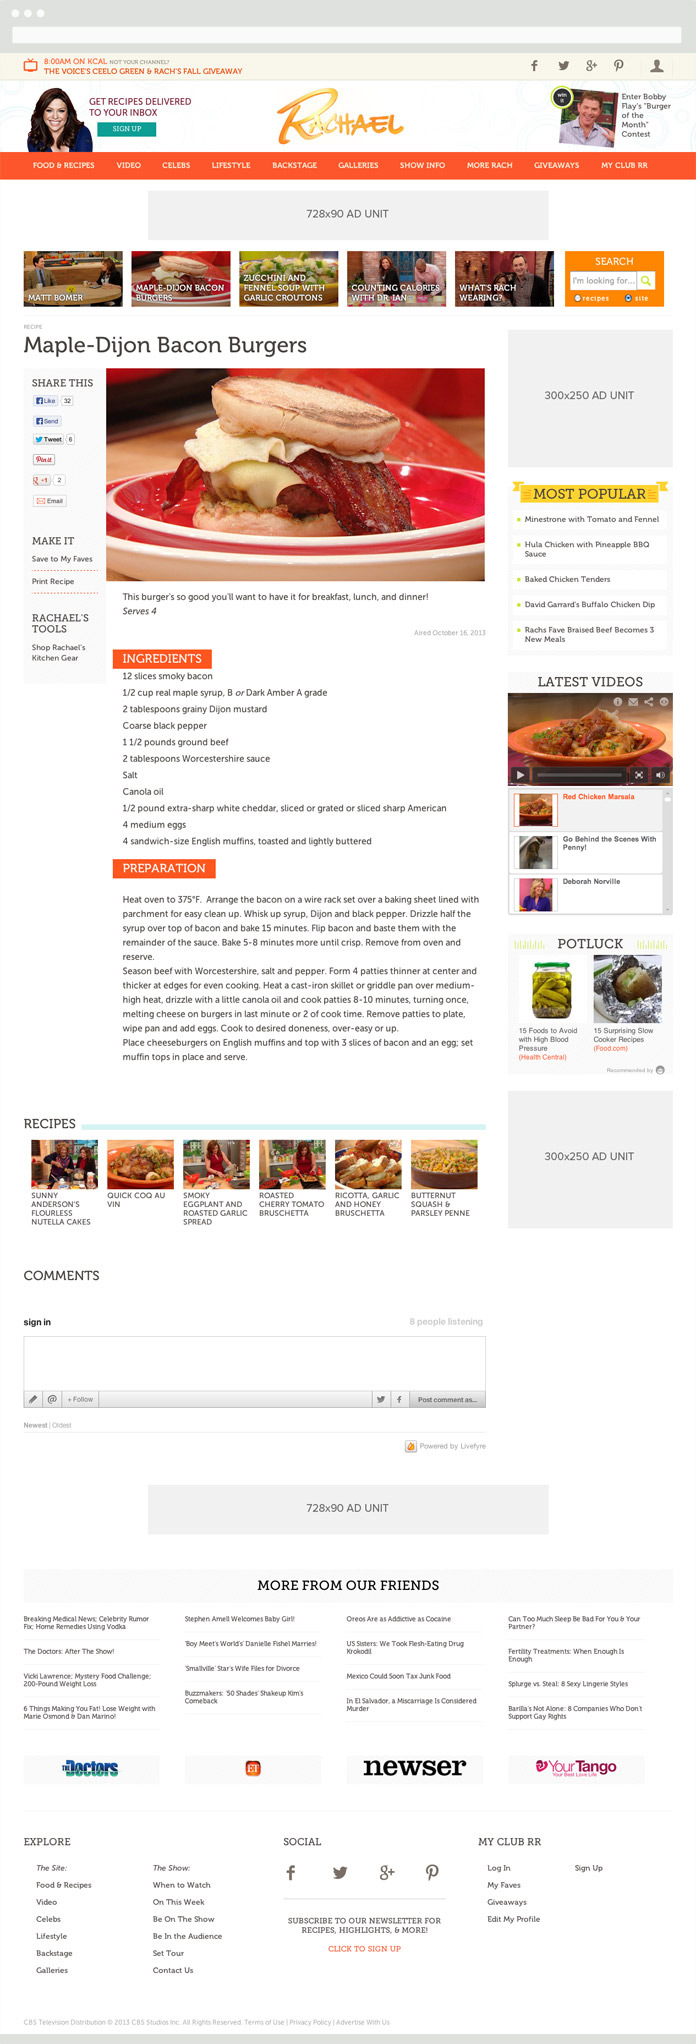 Image of a Rachael Ray Show Recipe Page